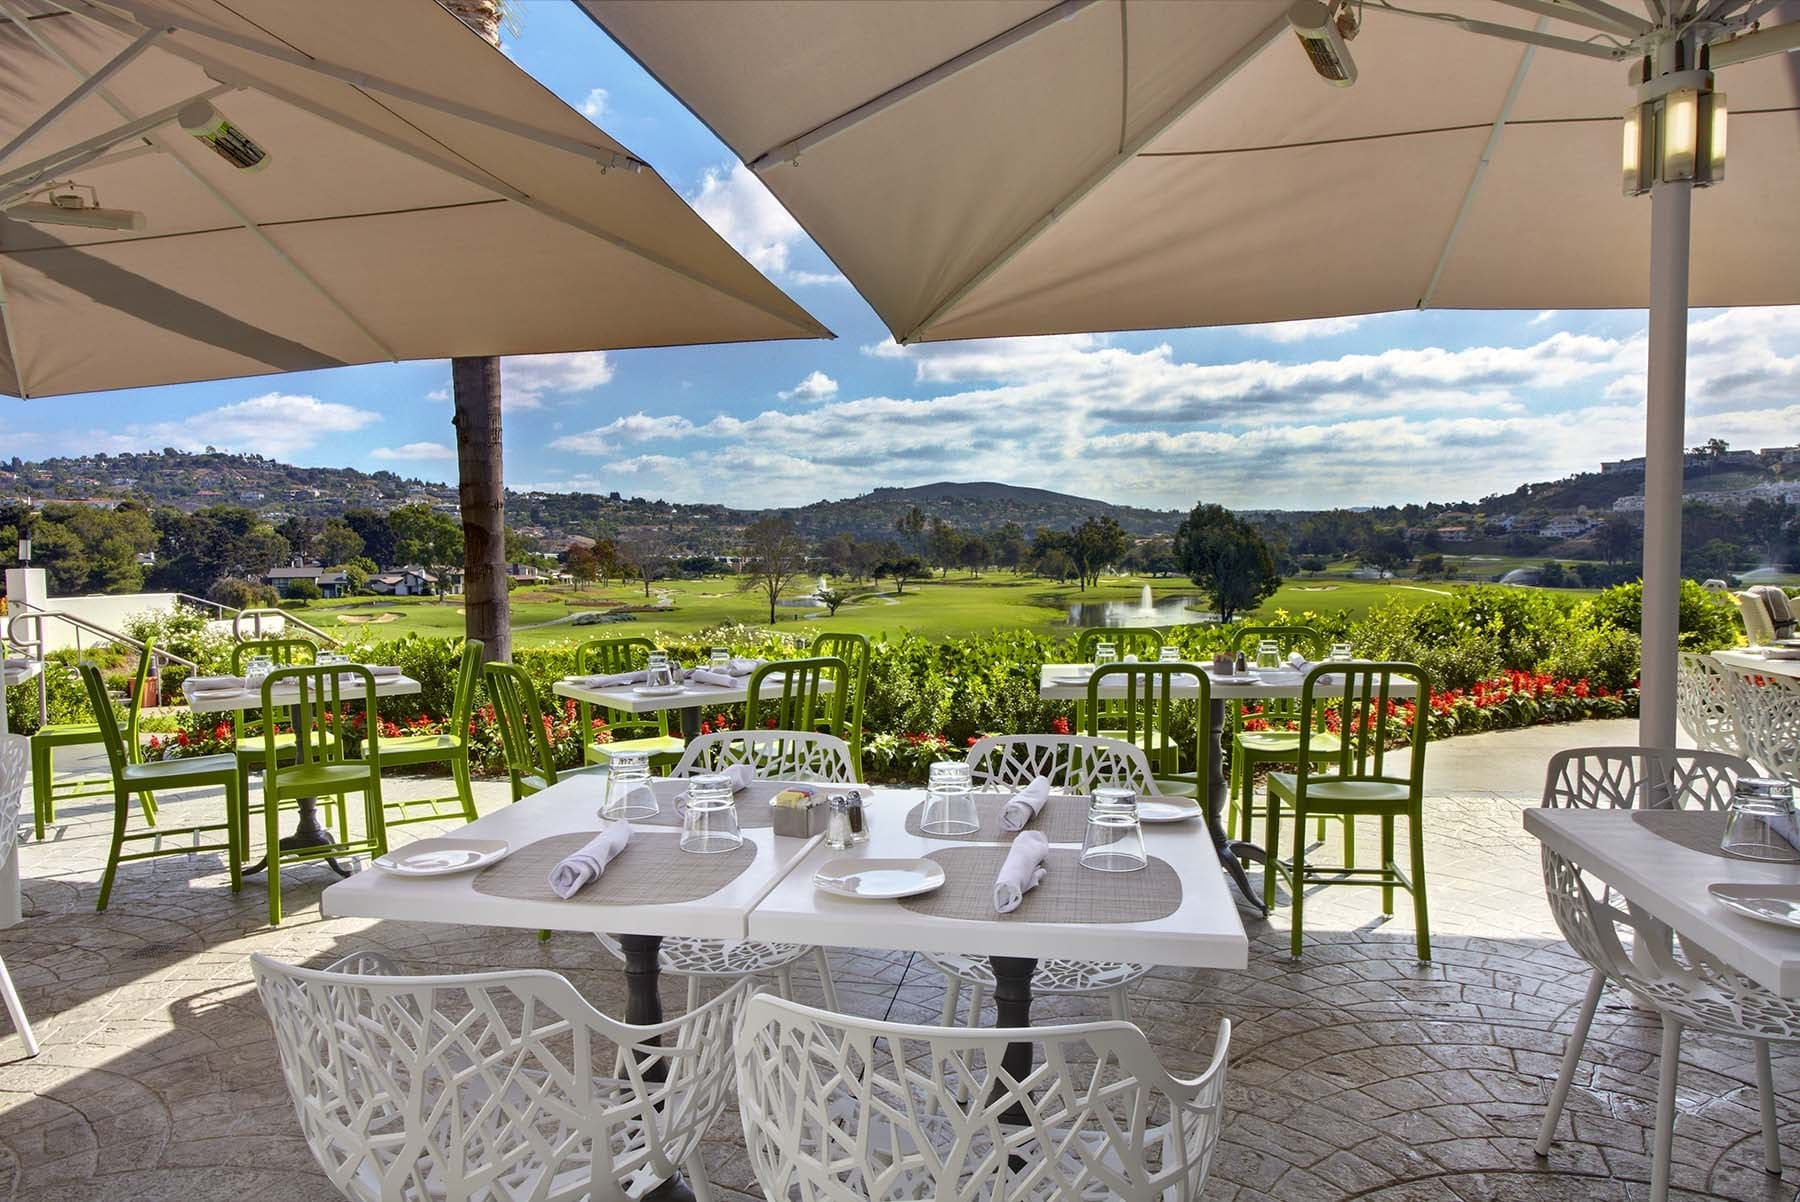 Omni La Costa's VUE Restaurant outdoor patio overlooking the golf course.